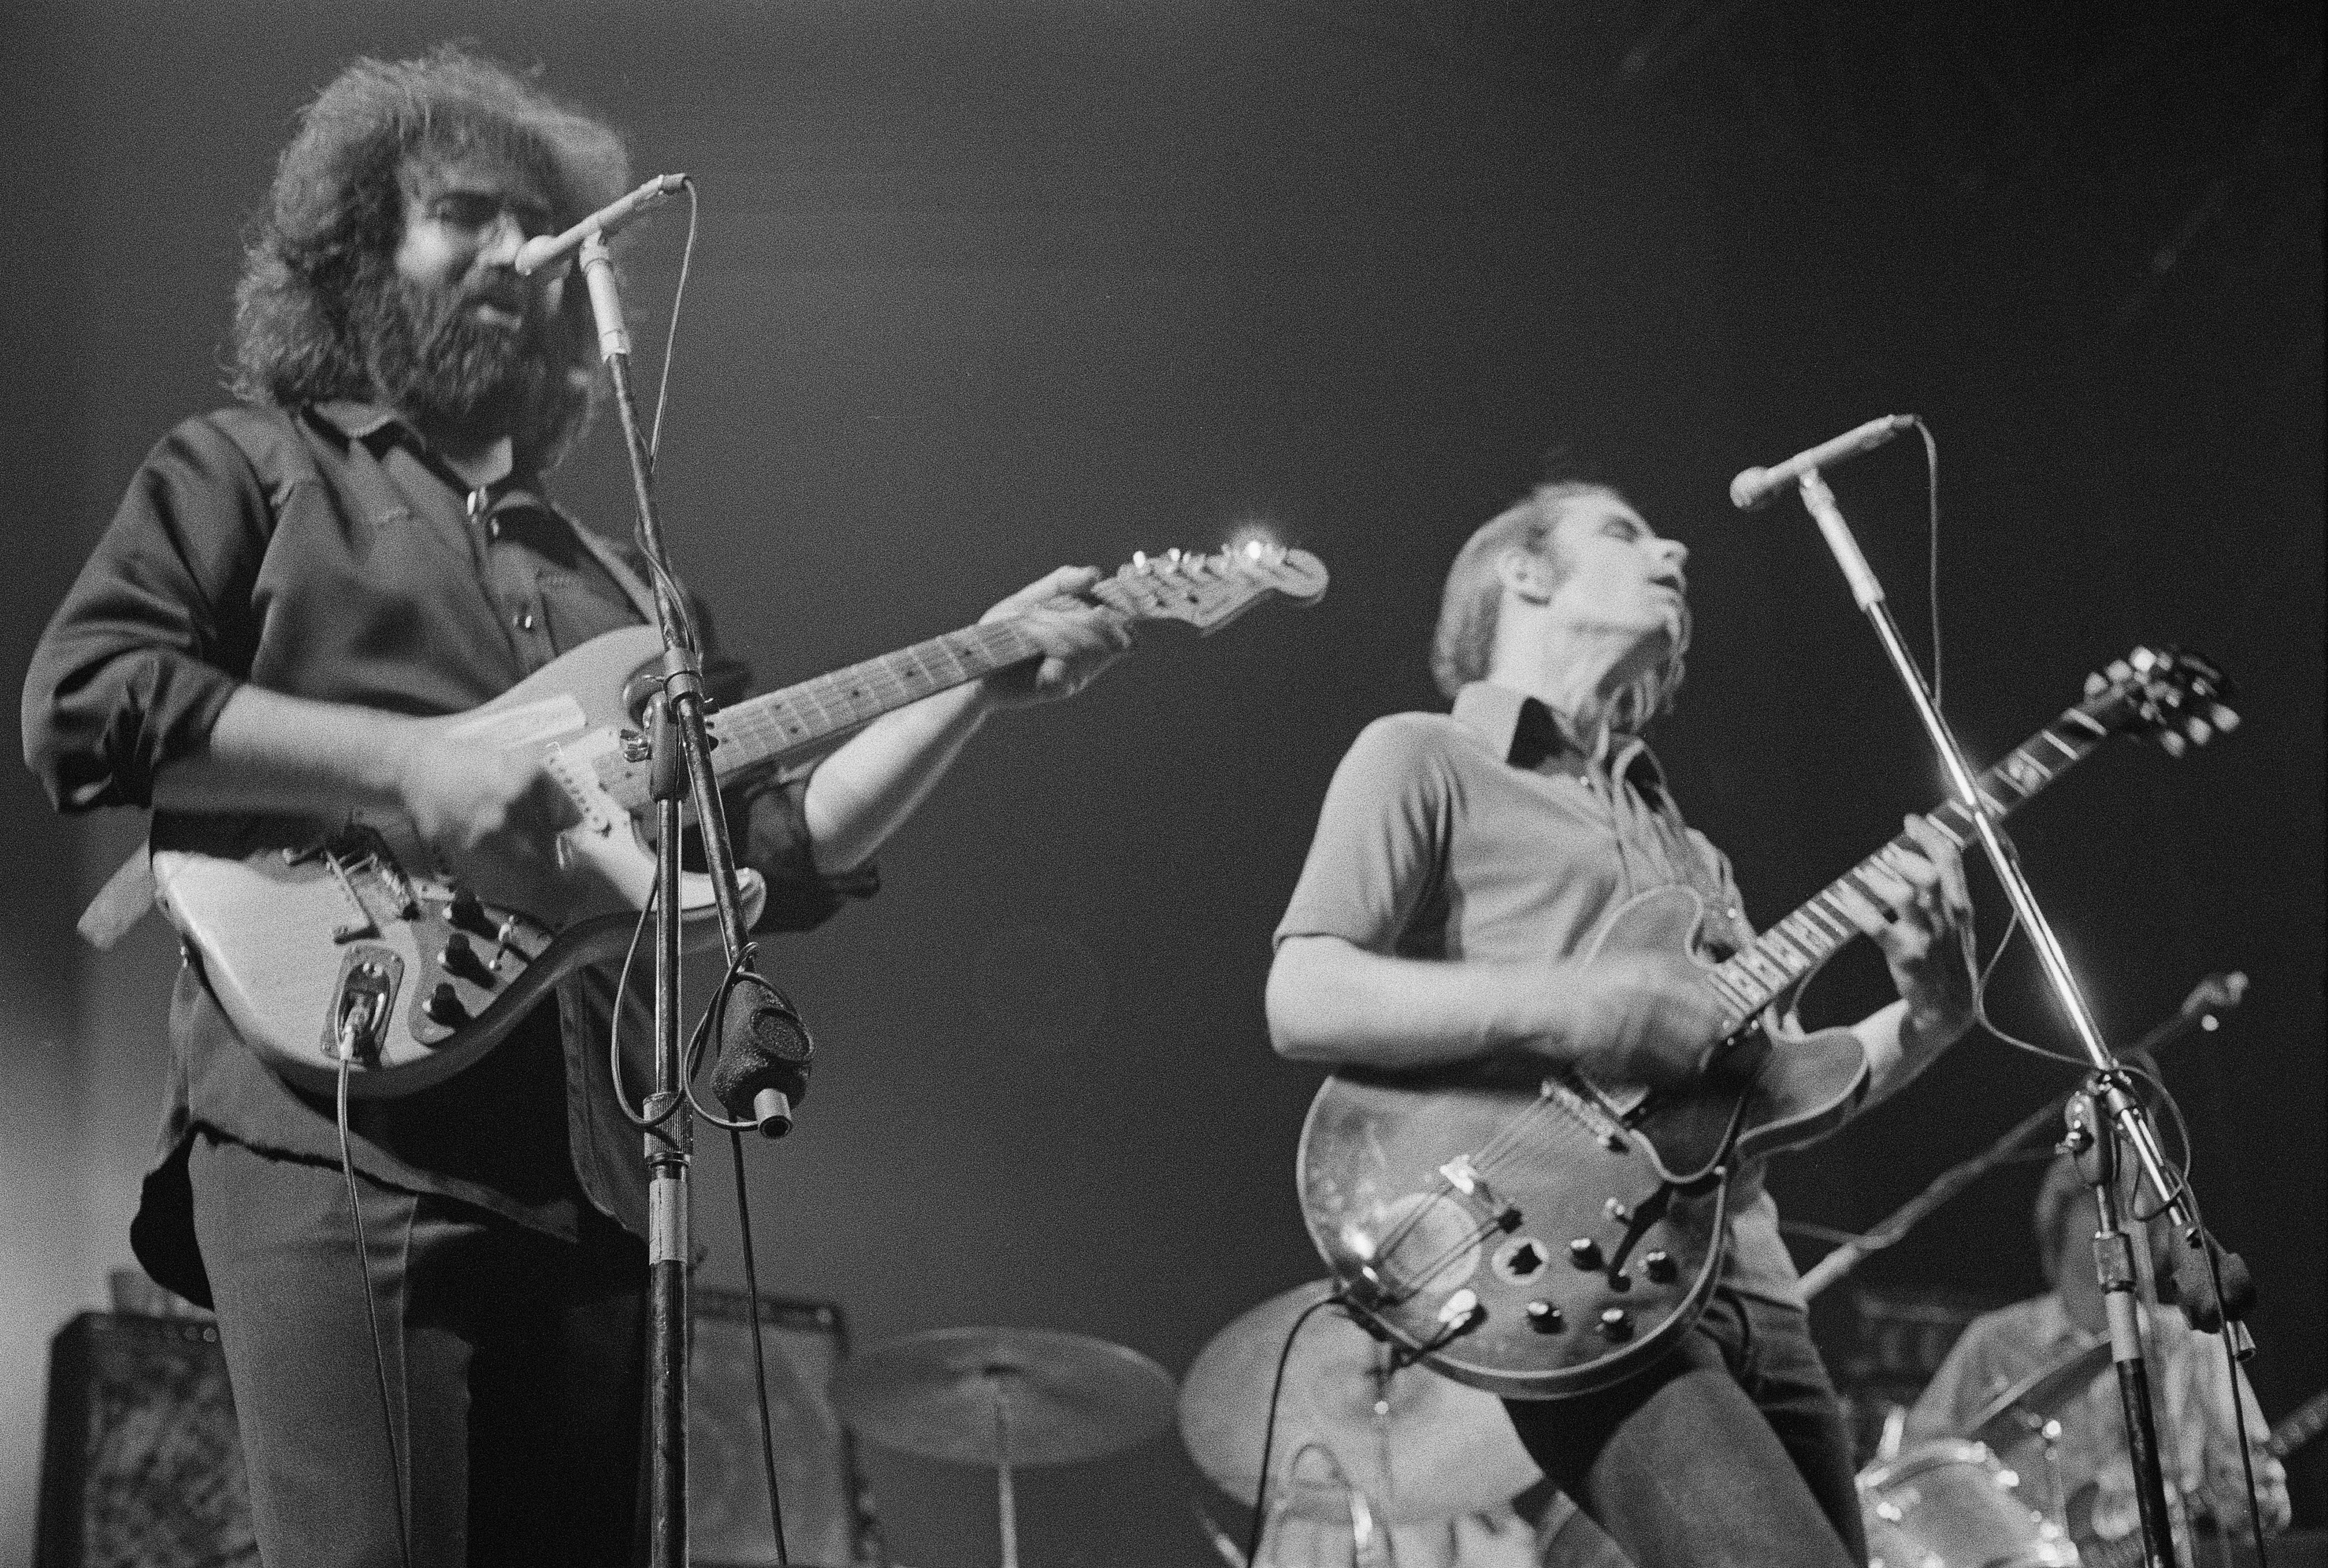 Jerry Garcia (left) and Bob Weir of The Grateful Dead, 1972